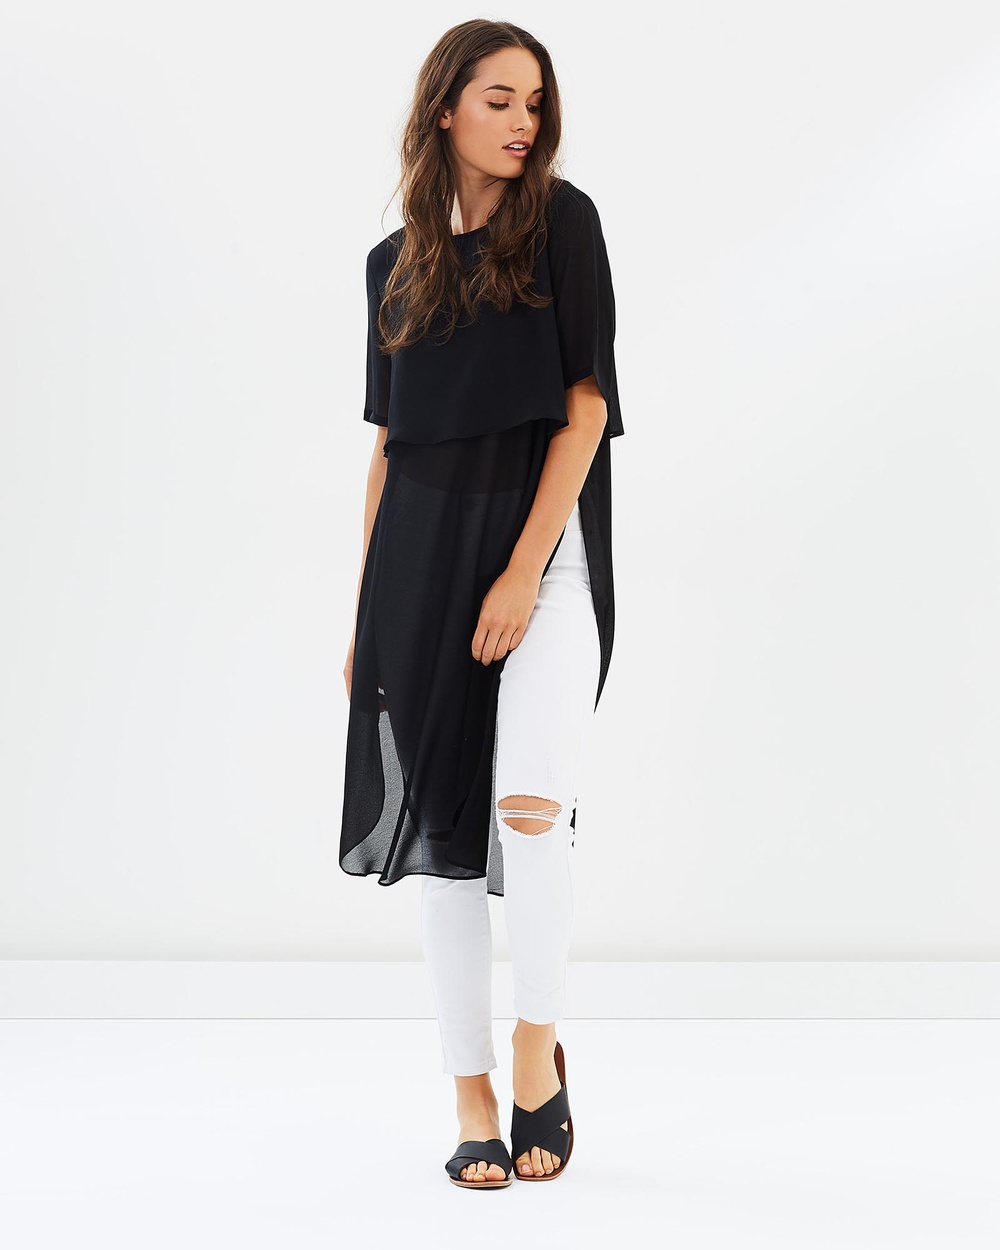 Lincoln St The Layering Tee Tops Black The Layering Tee